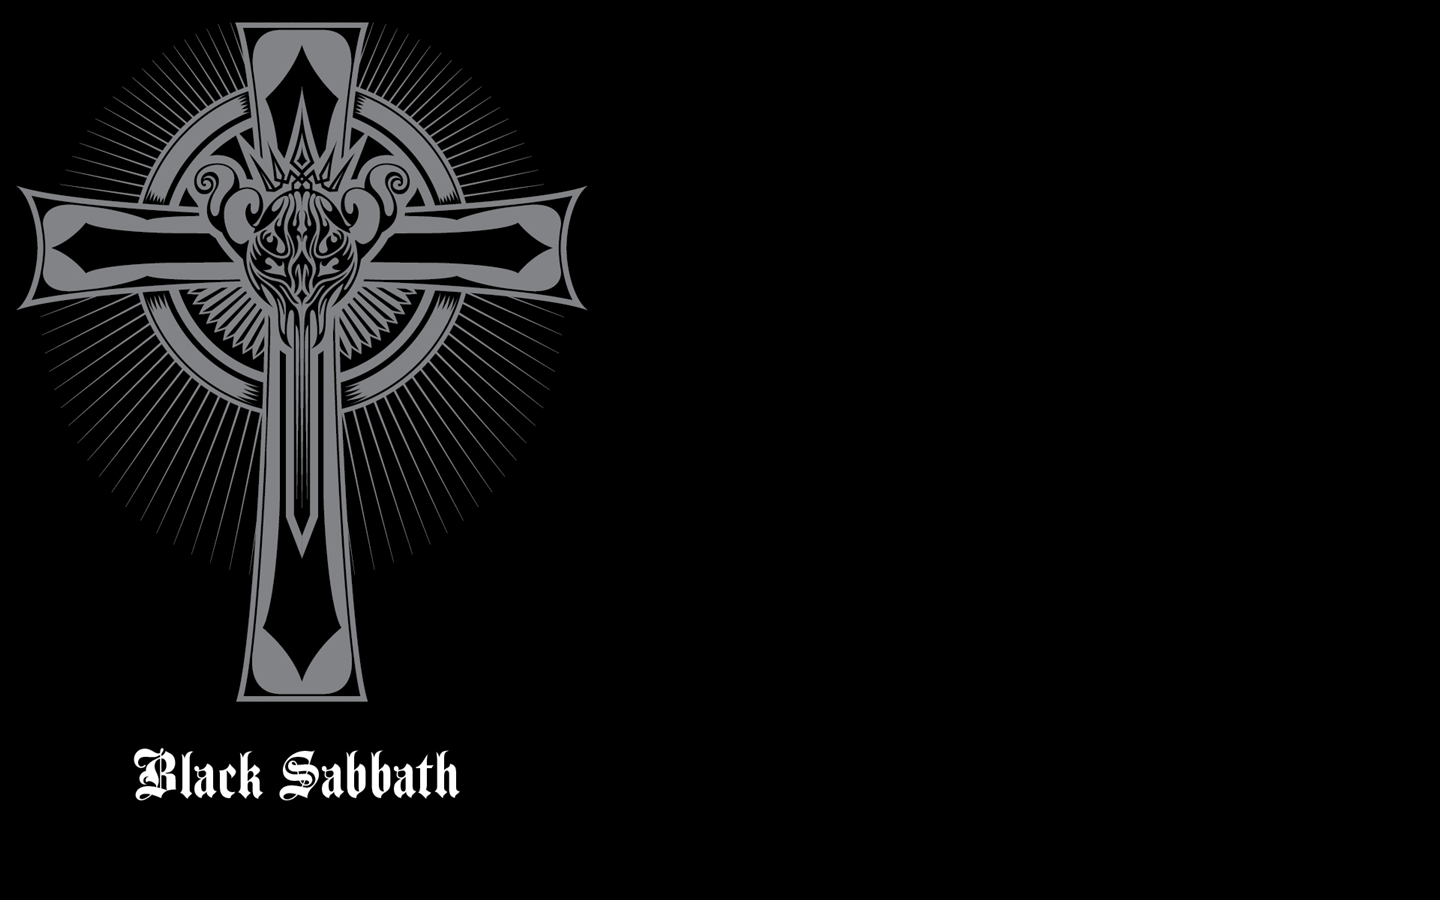 black sabbath images cross hd wallpaper and background